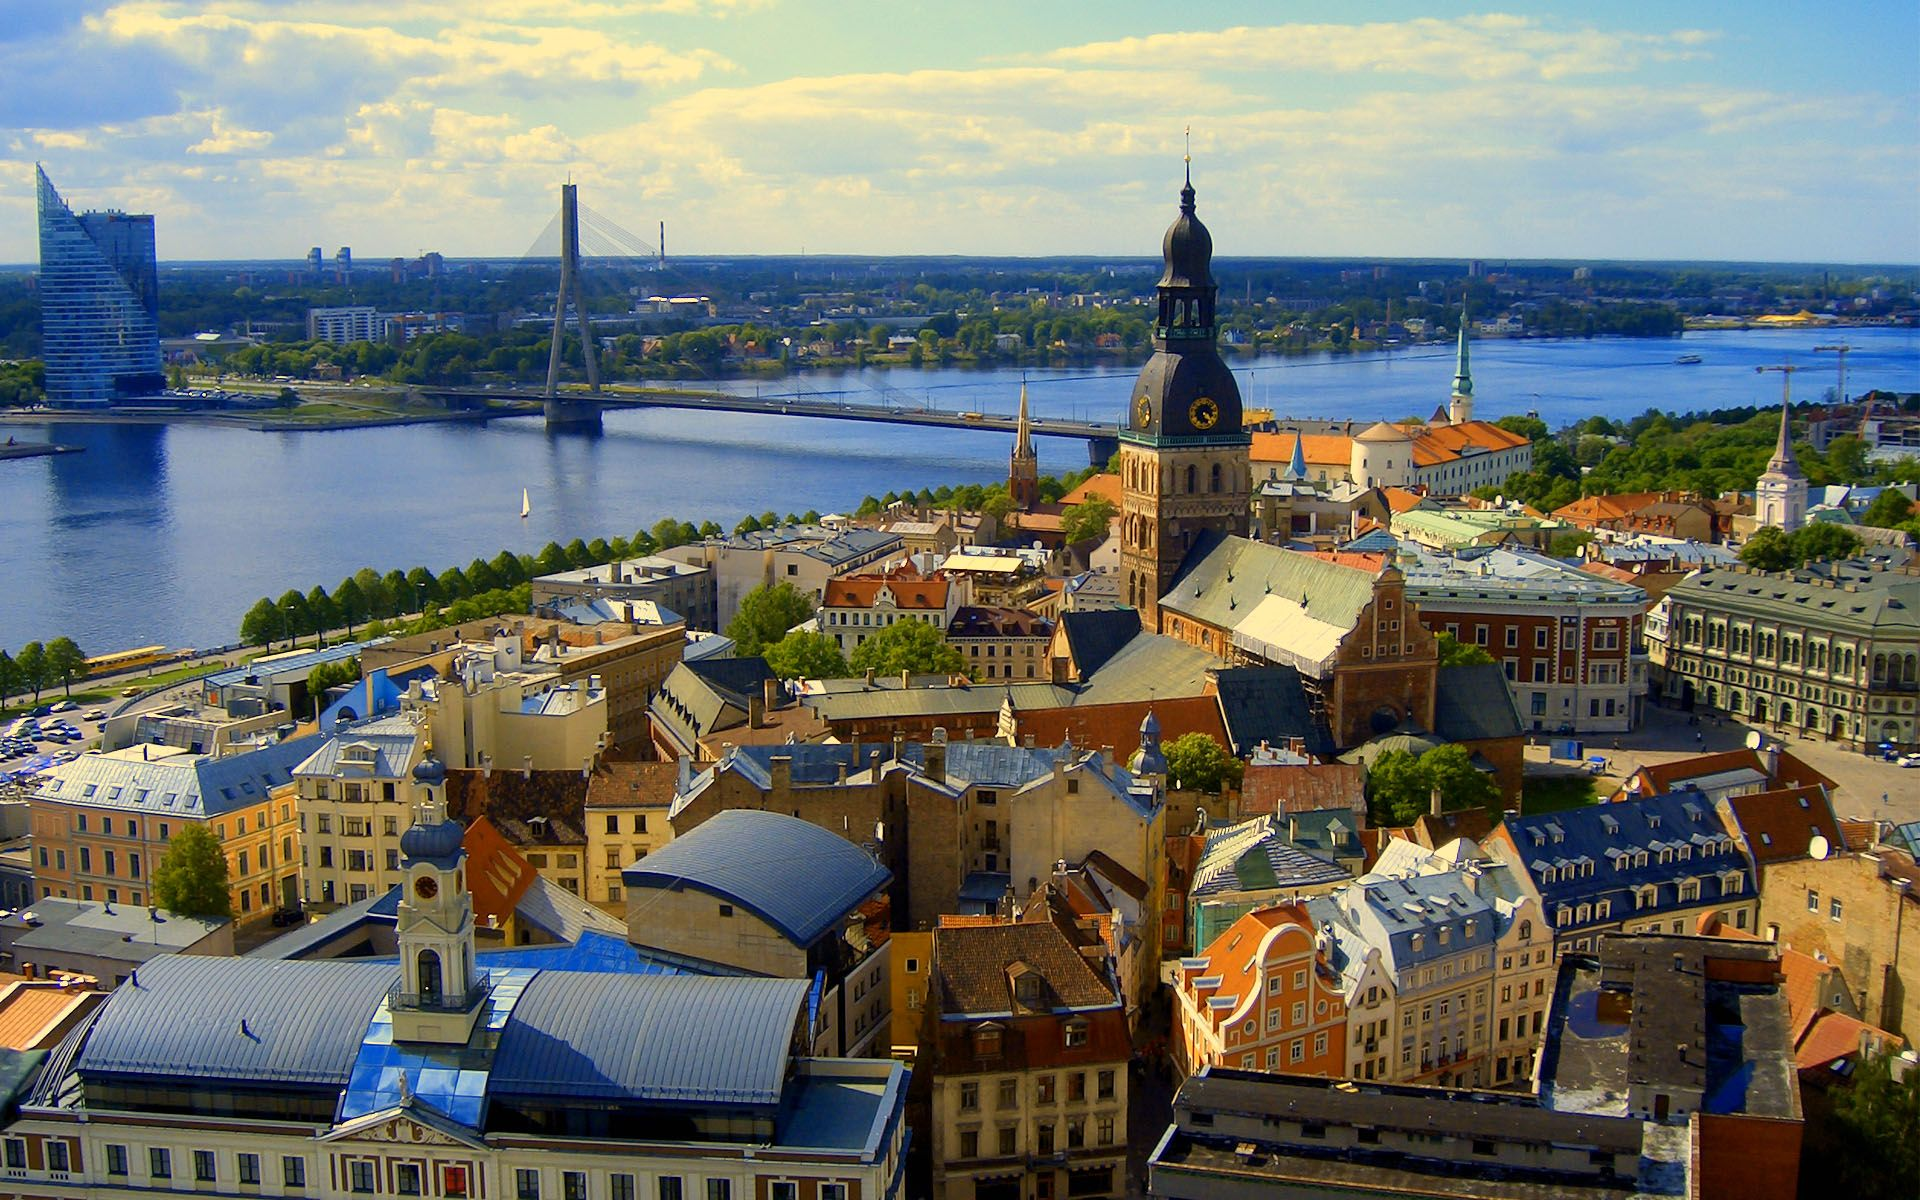 latvia_riga_saint_peters_church_wide_wallpaper-wide